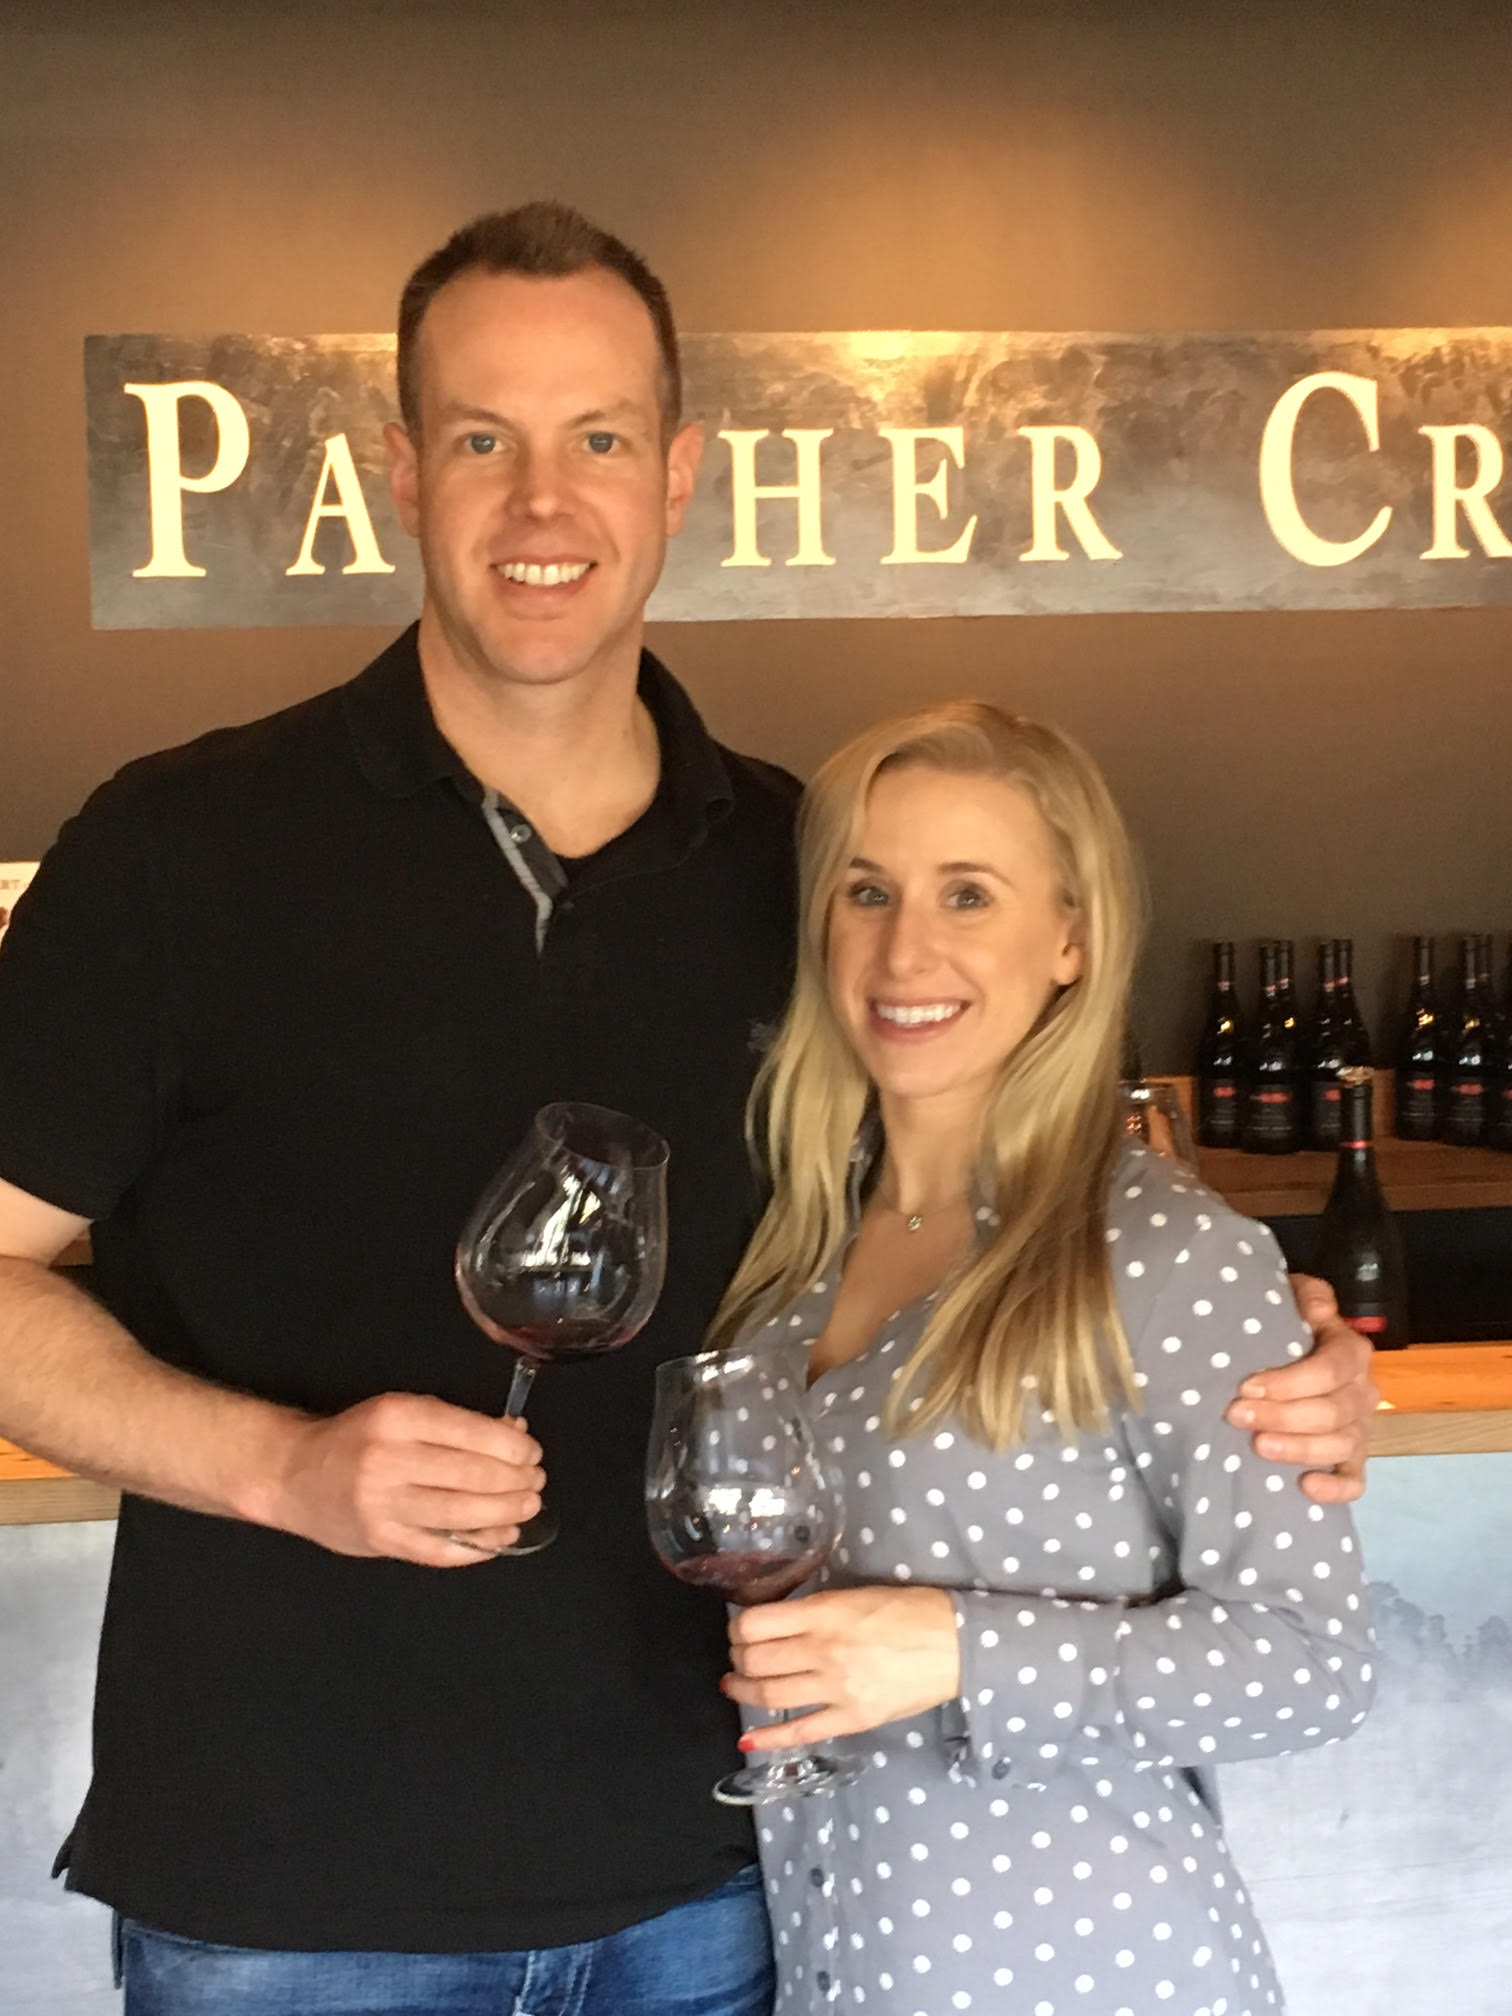 We had a great visit to Panther Creek a few weeks back.